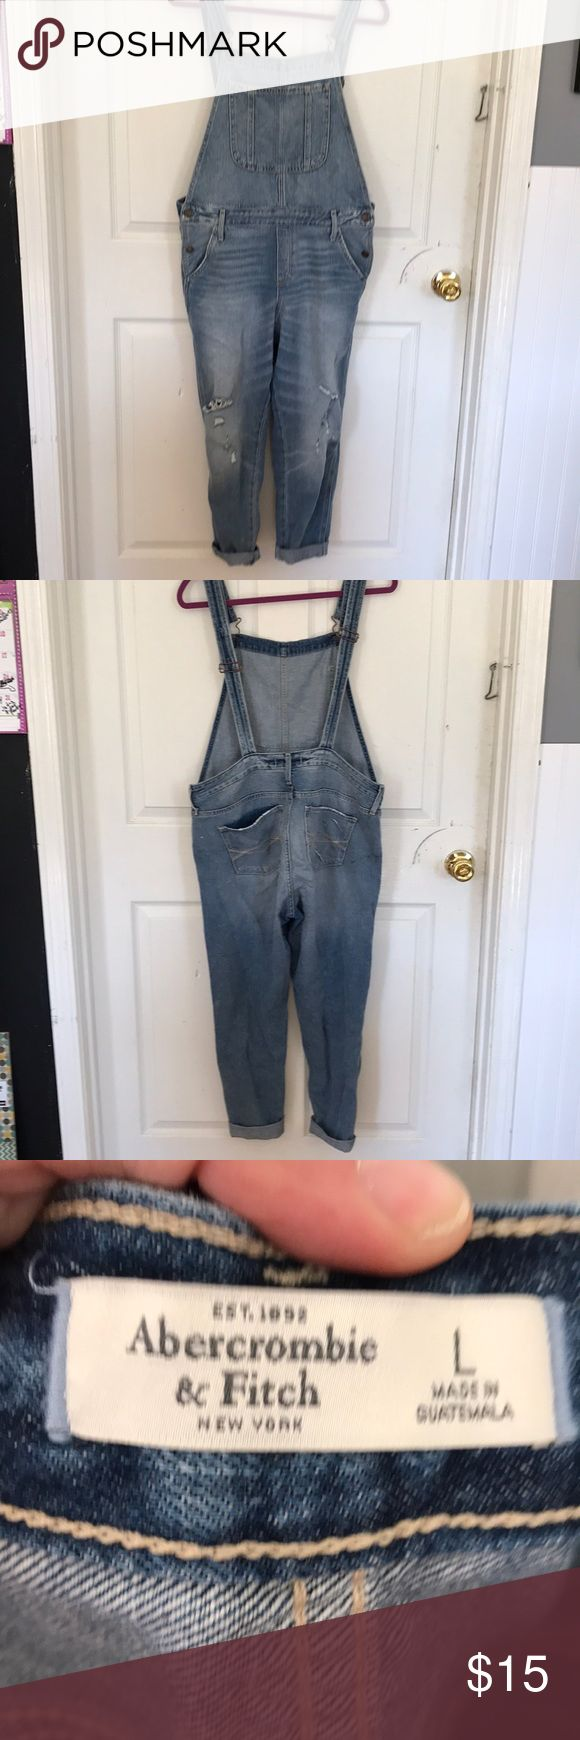 Overalls Size large Abercrombie & Fitch skinny jean overalls. Distressed. Recent posh purchase. Jus didn't work out for me. Abercrombie & Fitch Jeans Overalls